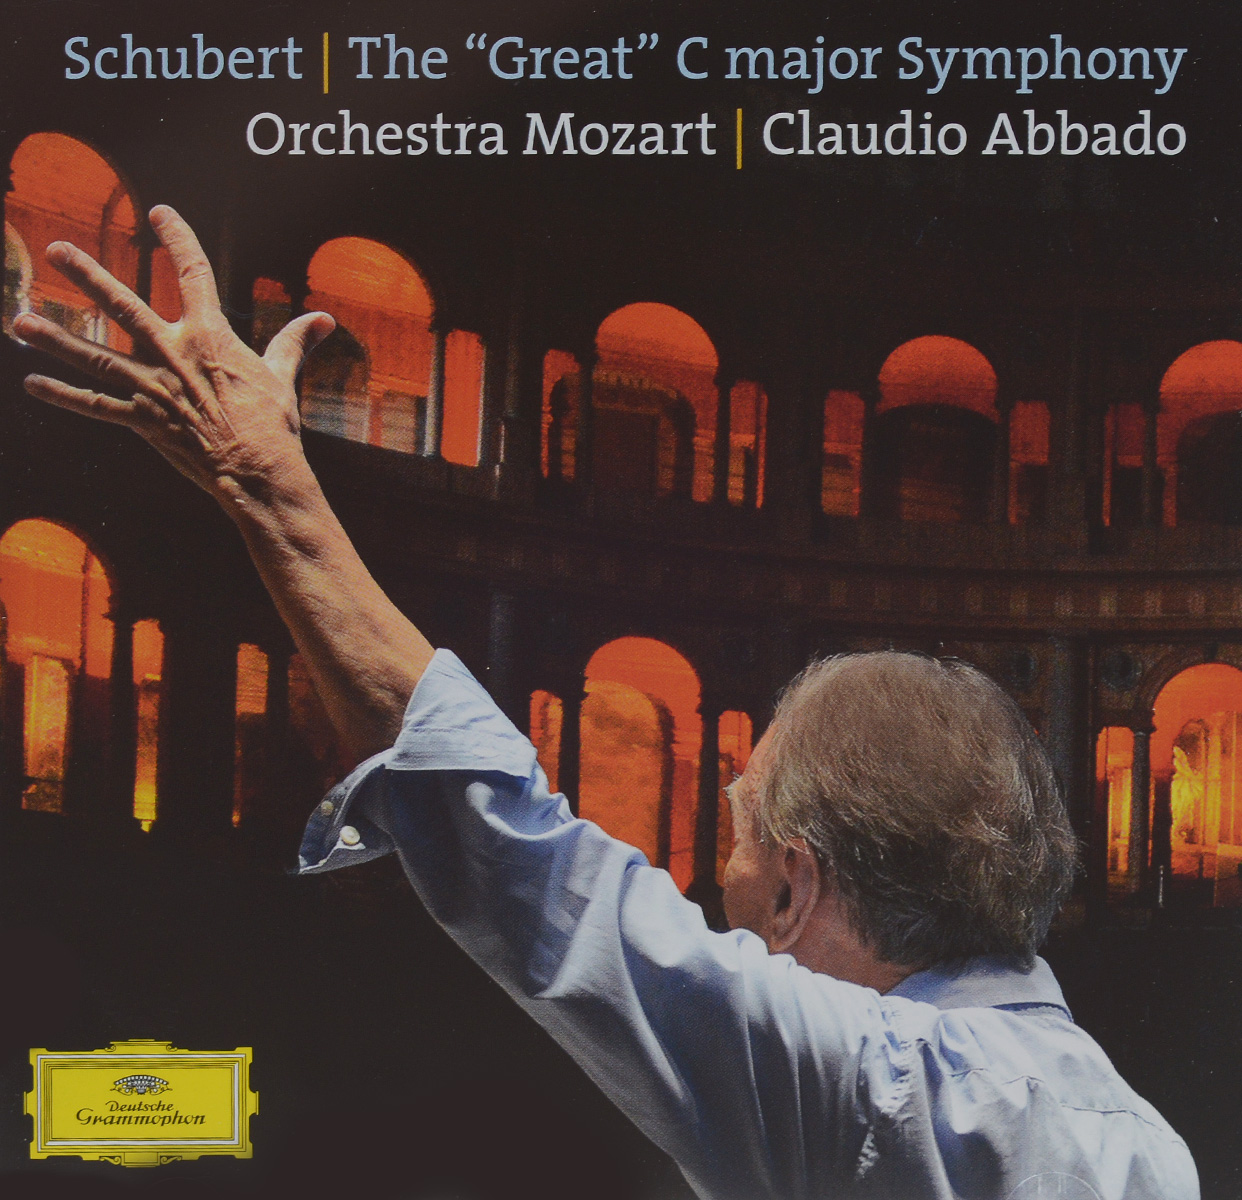 Клаудио Аббадо,Orchestra Mozart Claudio Abbado. Schubert: The Great C Major Symphony клаудио аббадо orchestra mozart claudio abbado schubert the great c major symphony 2 lp